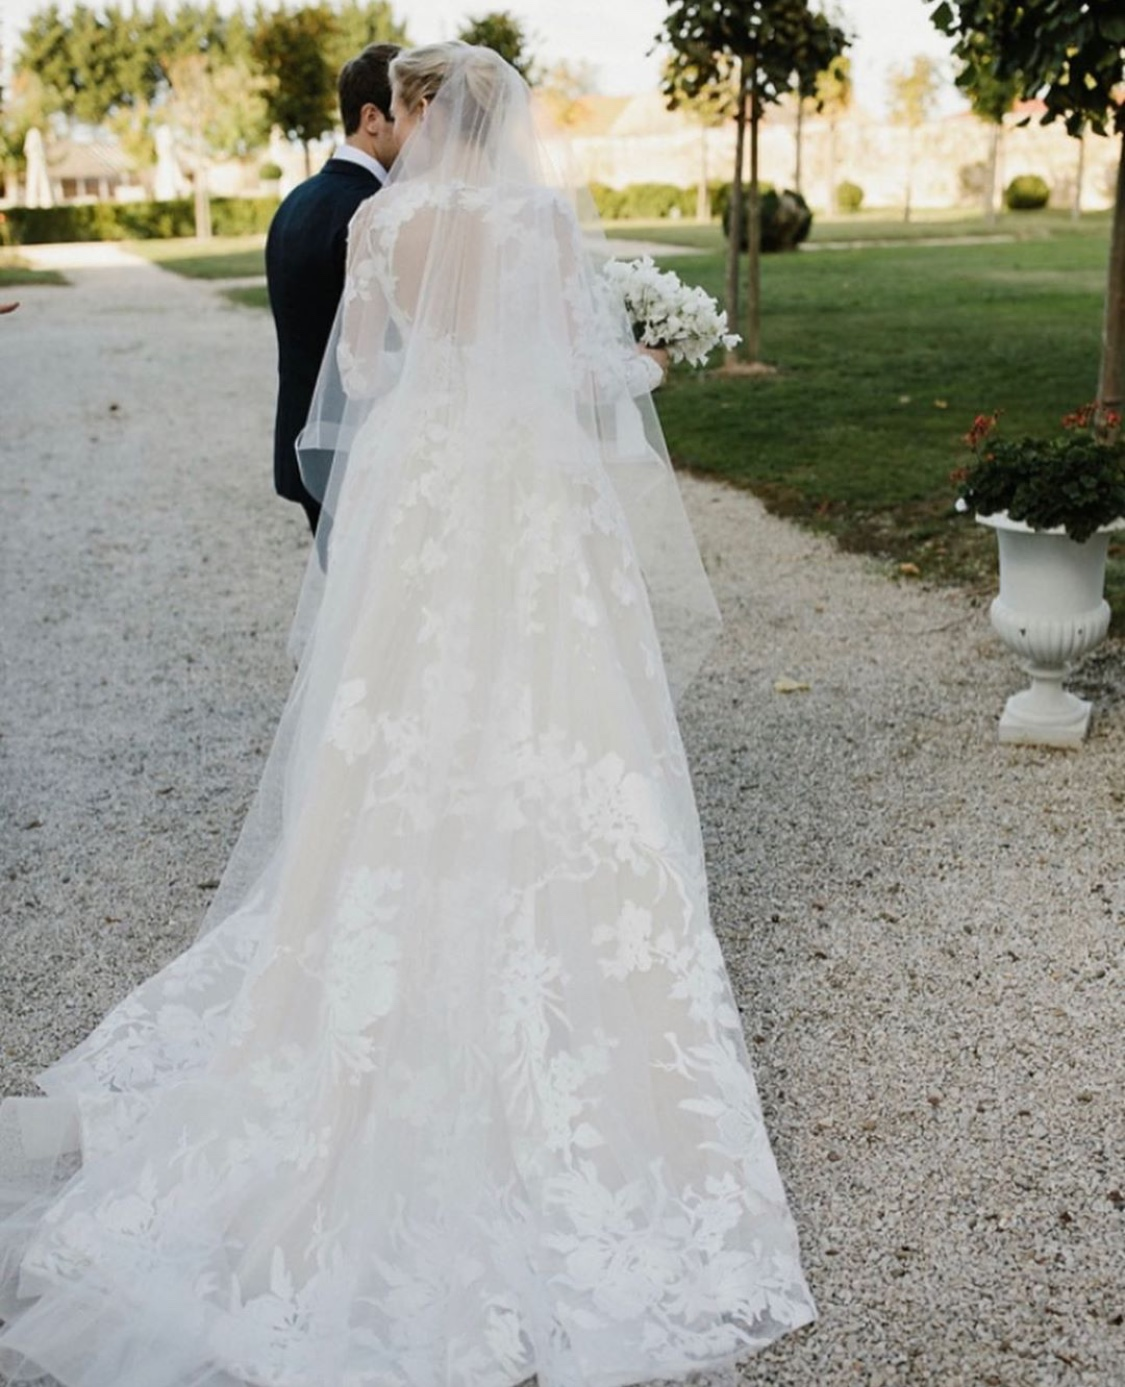 Love Story: A Monique Lhuillier Wedding Gown of Dreams at the Chateau de Varennes